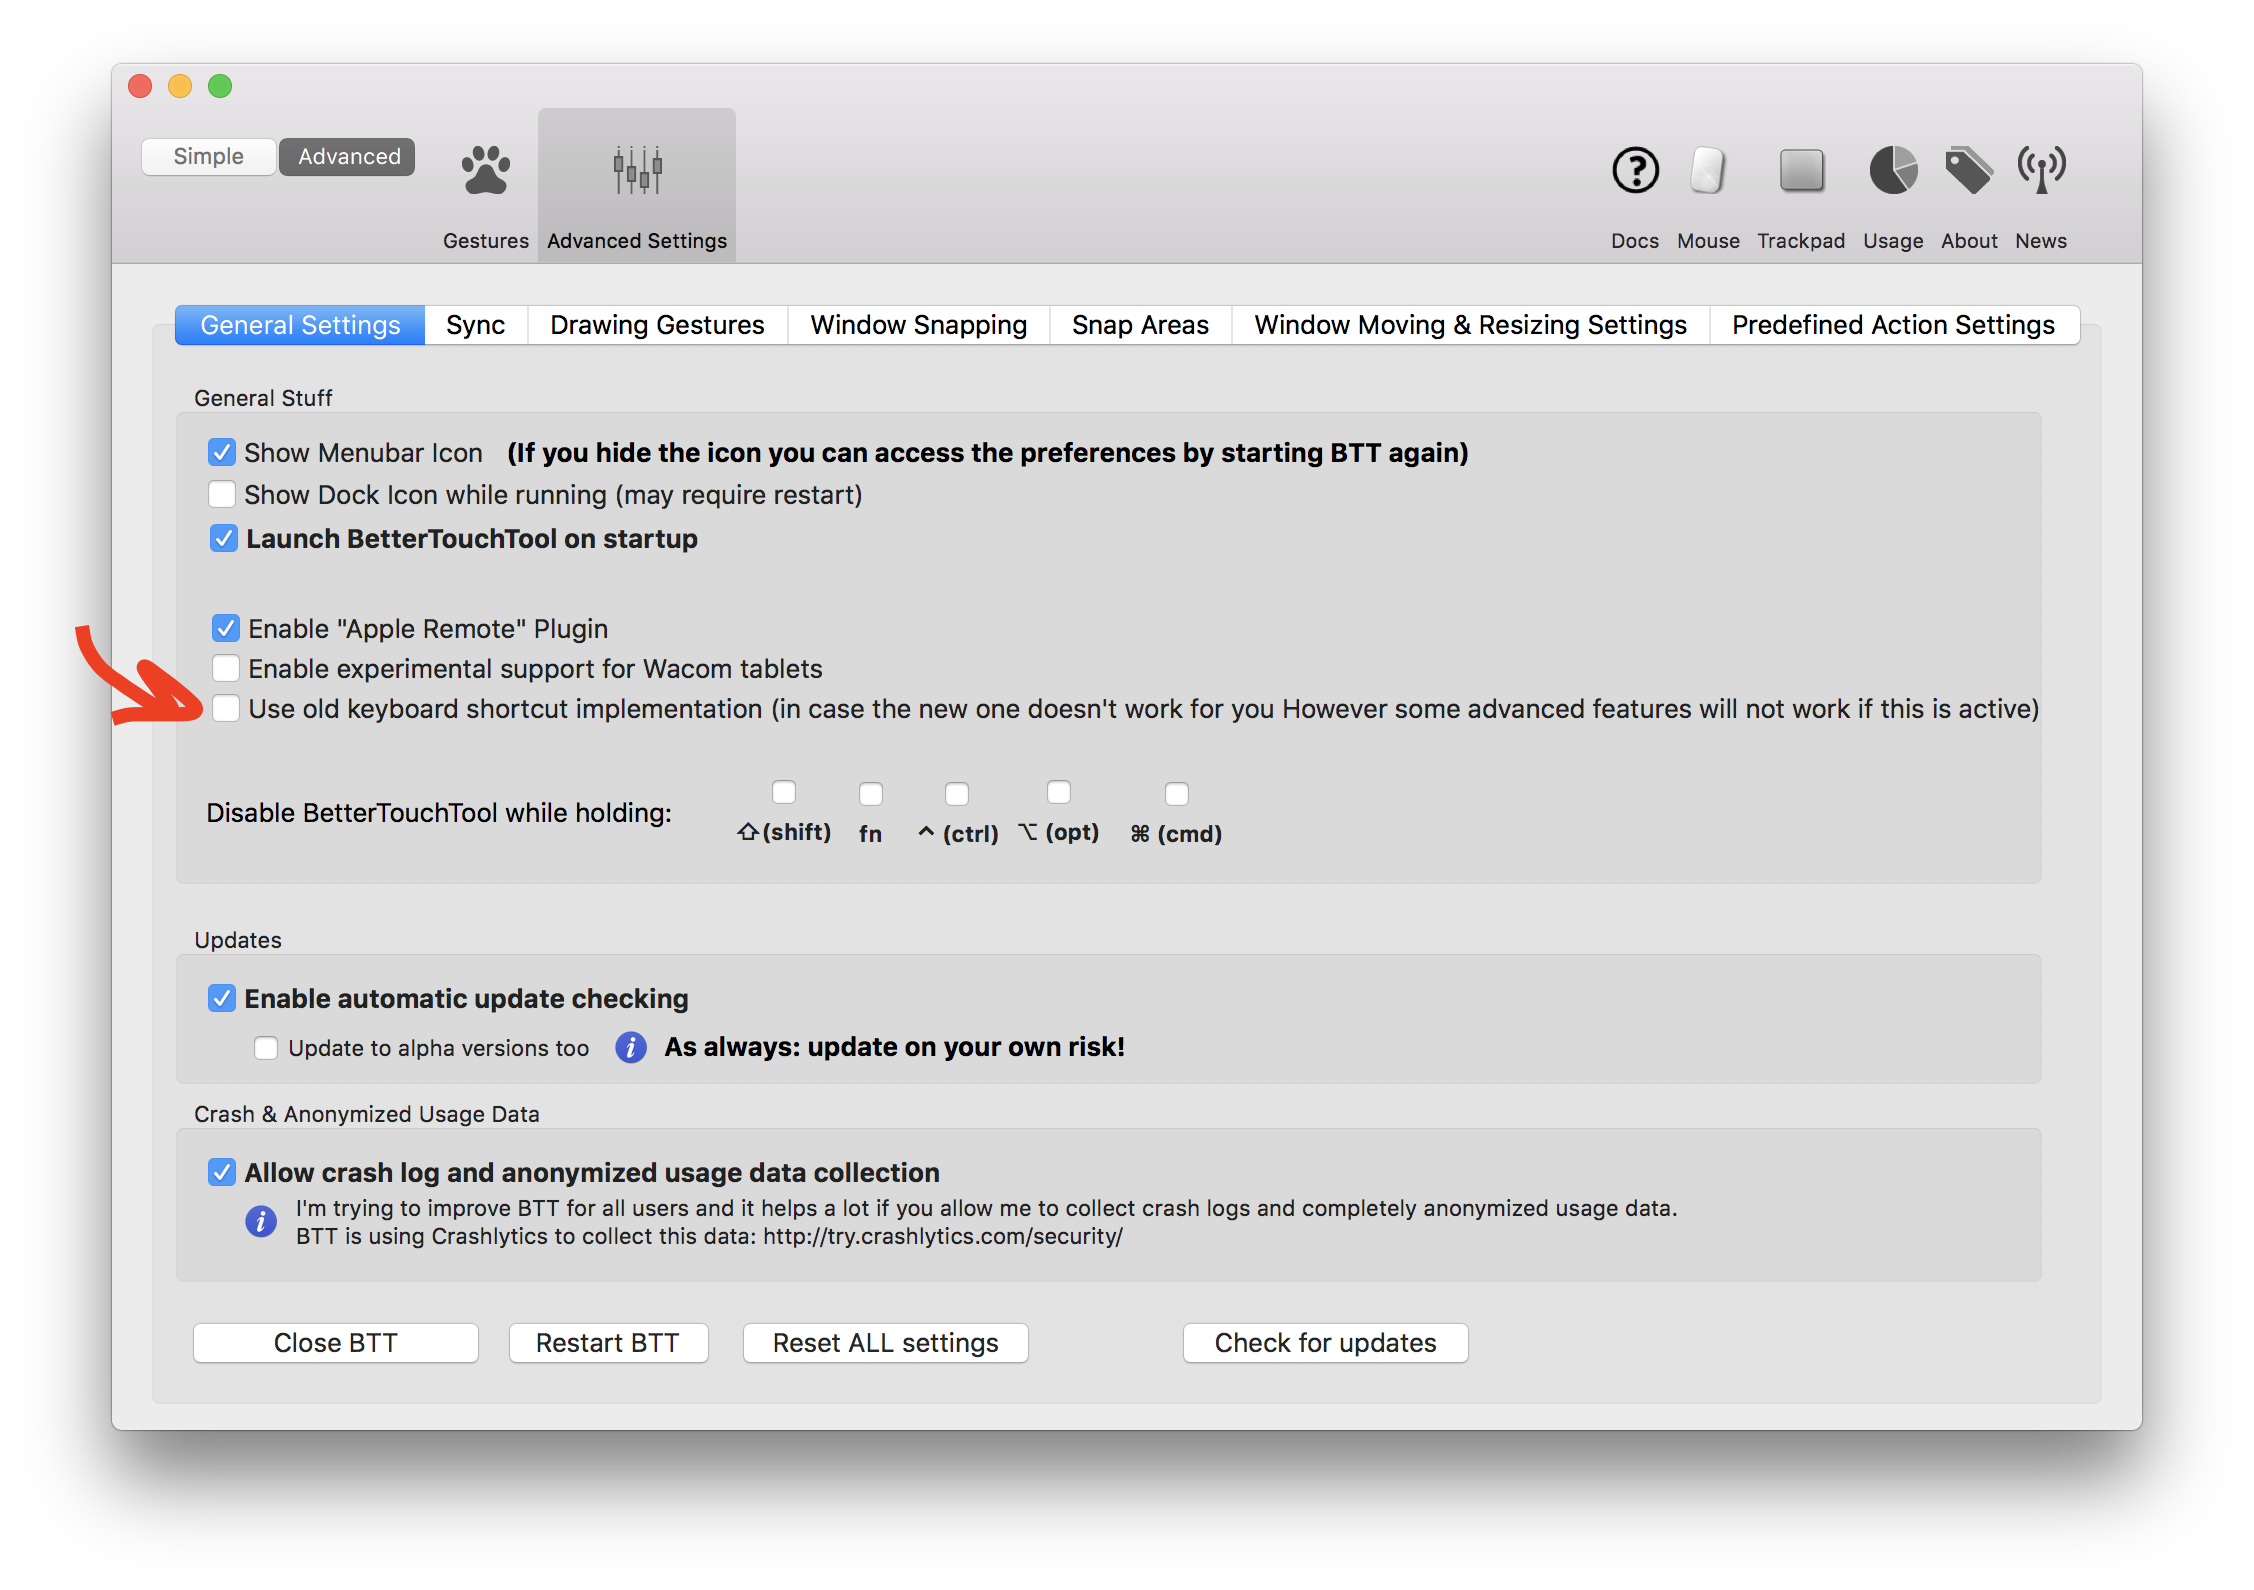 keyboard shortcut not working for ITerm2 but for other apps